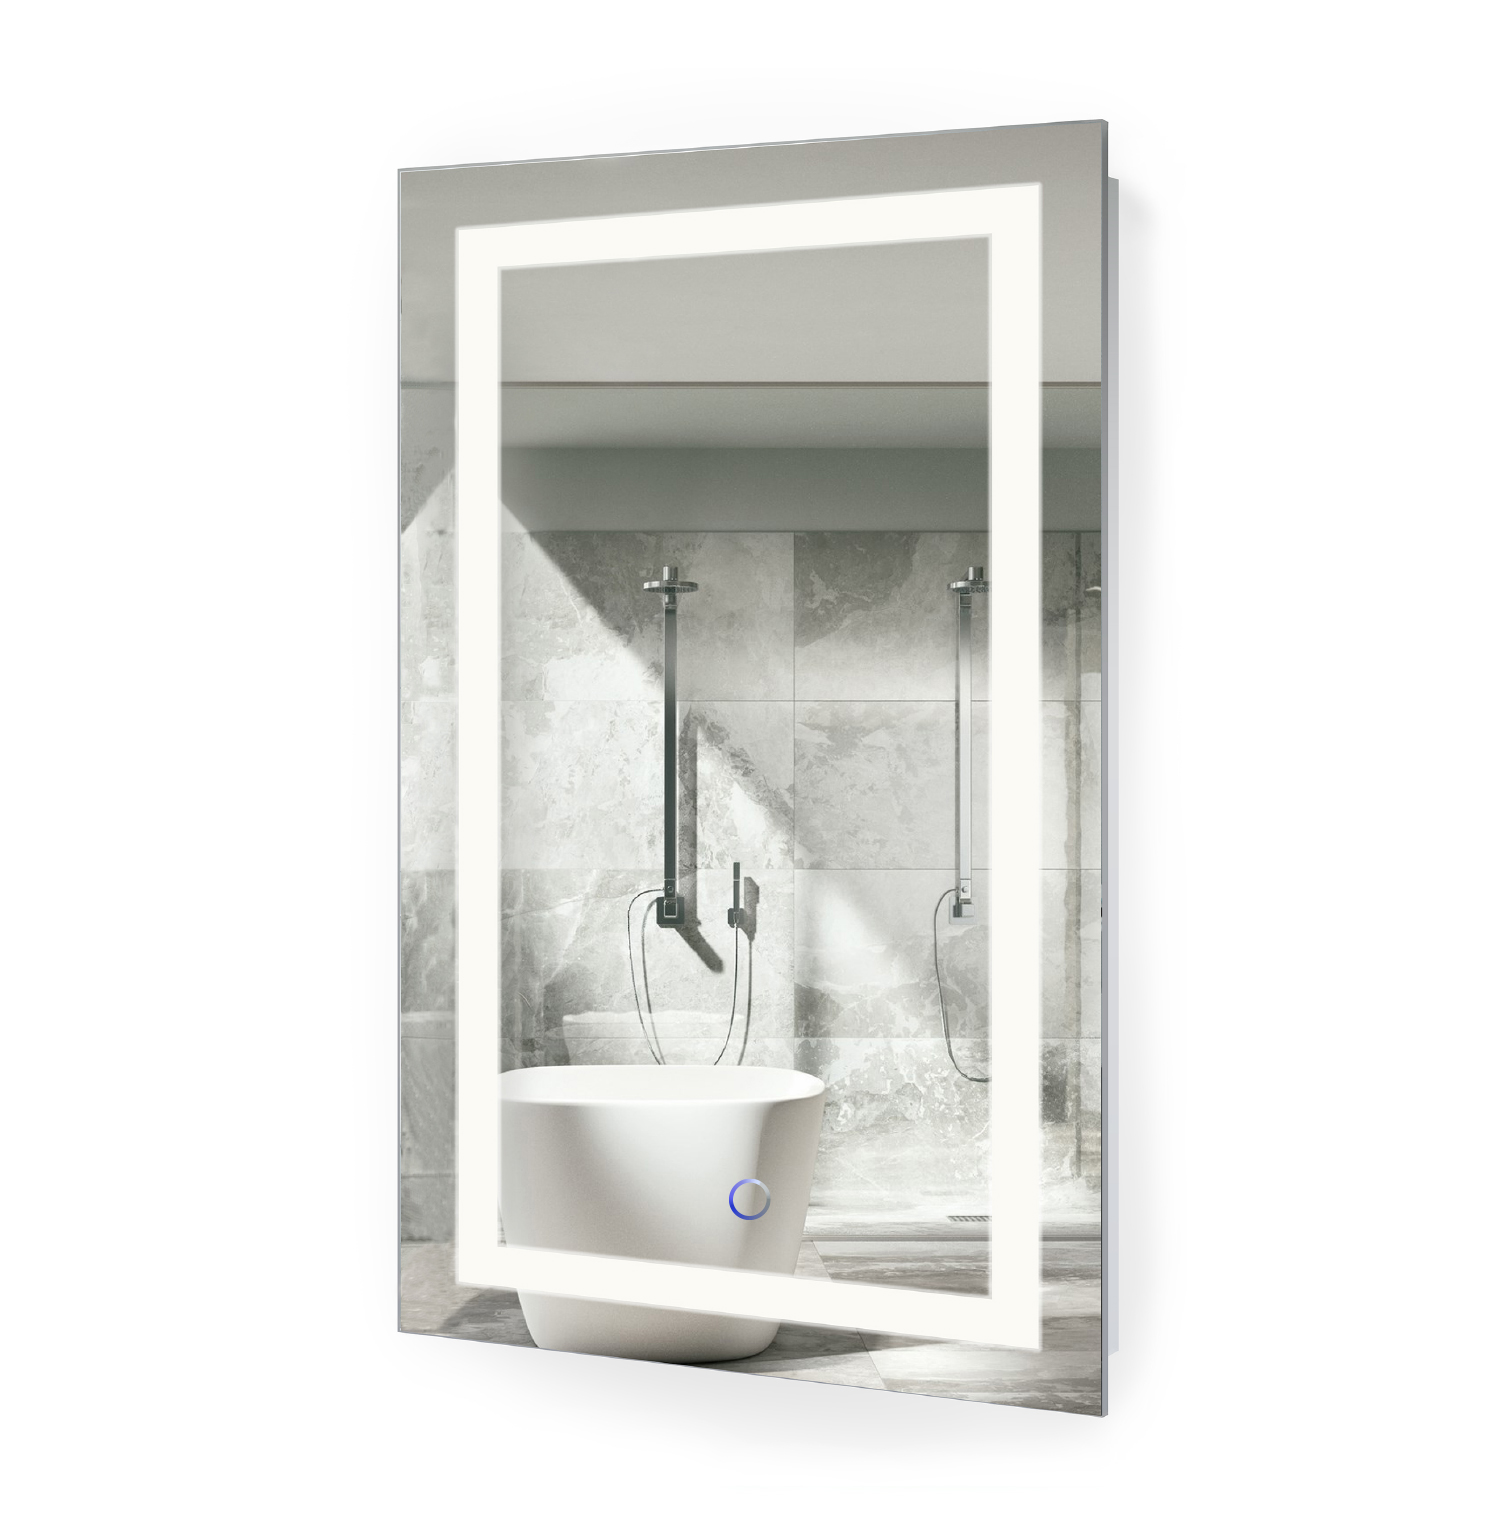 Lighted Bathroom Wall Mirror Large: LED Vanity Mirror 20″x32″ Bathroom Lighted Mirror With